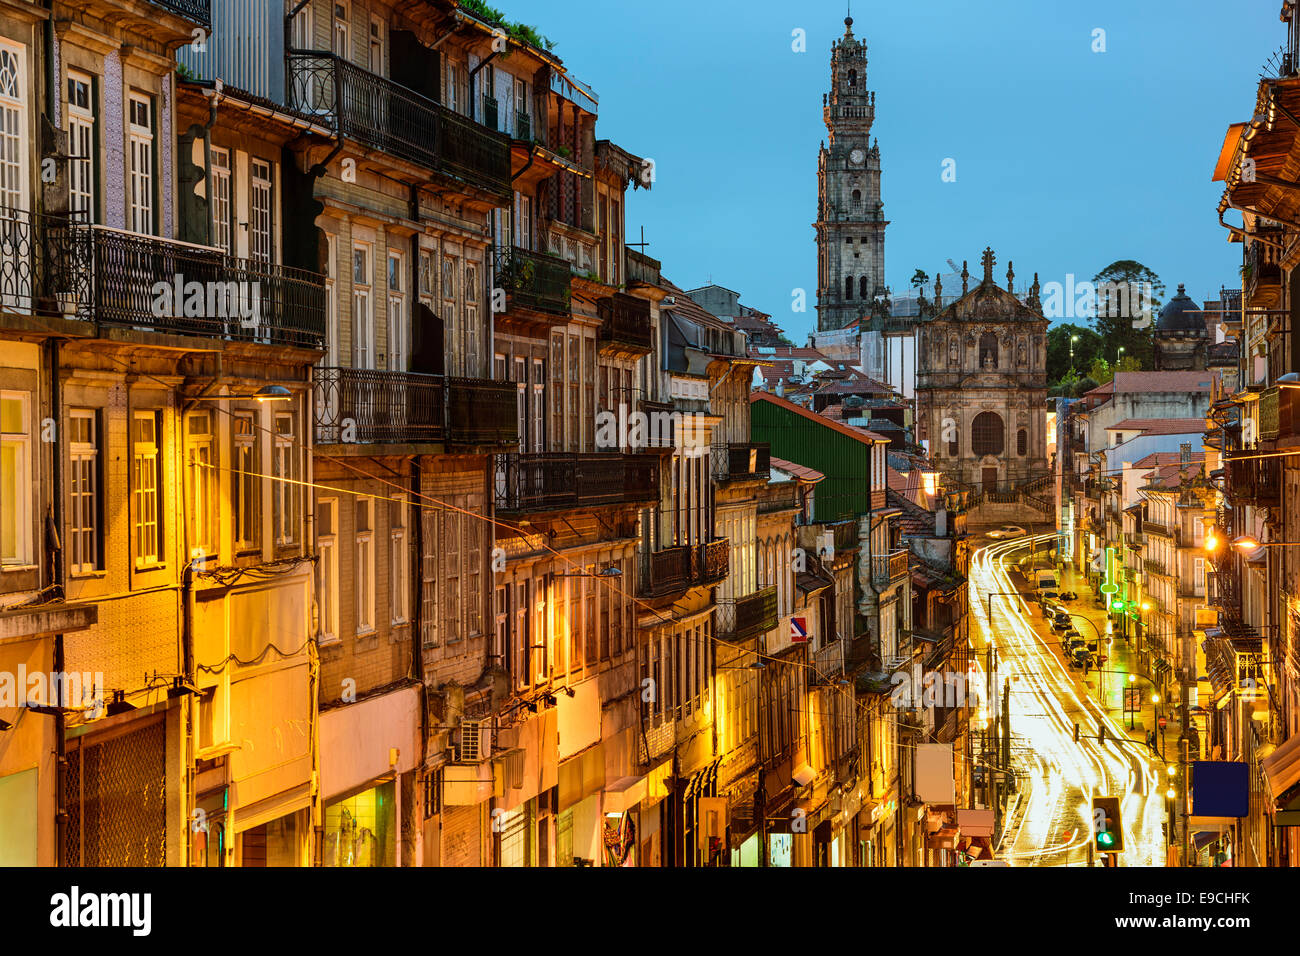 Porto, Portugal cityscape vers l'Église des clercs. Photo Stock